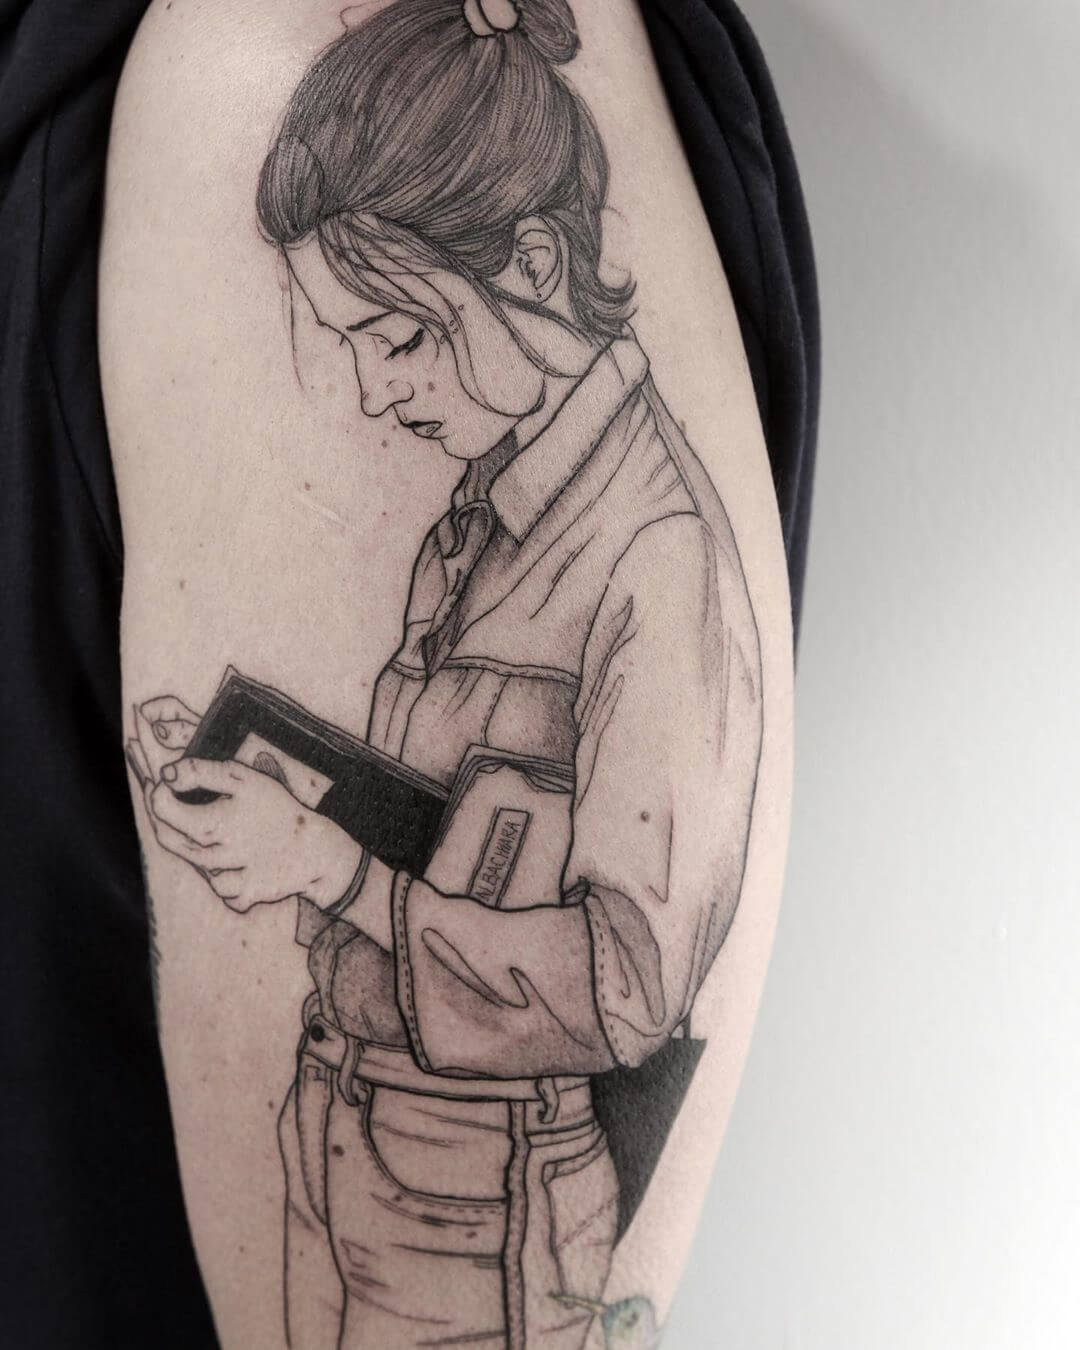 Woman reading a book tattoo by La Malafede